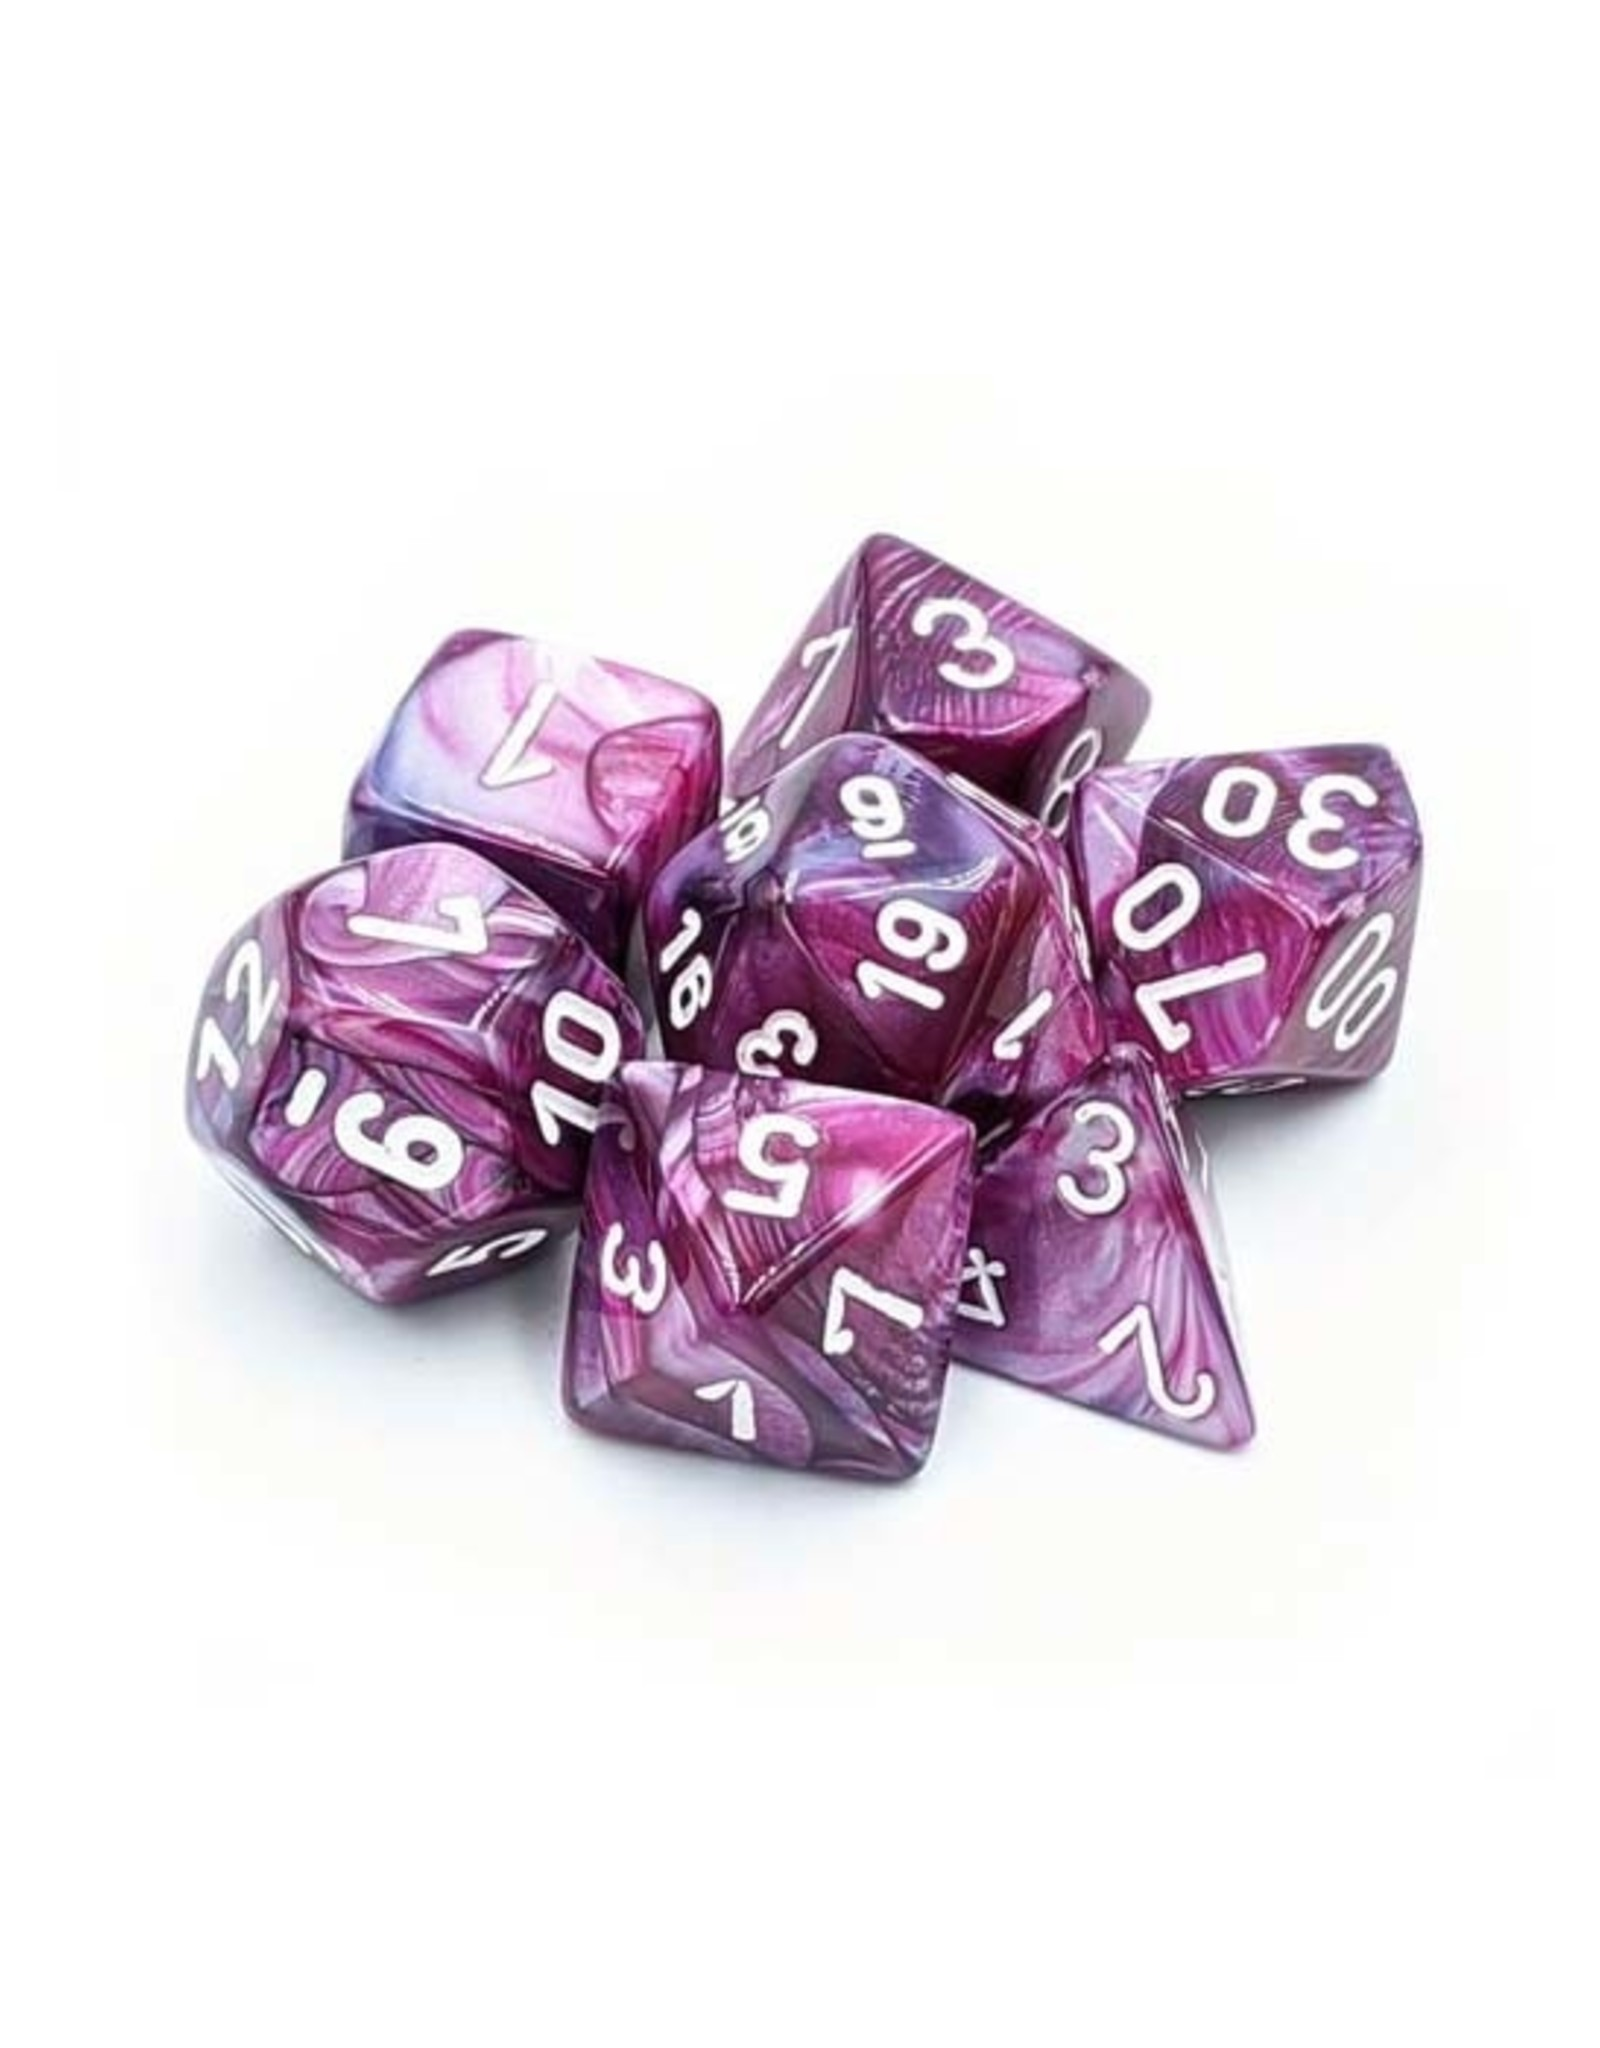 Chessex Chessex: Poly 7 Set - Lustrous - Amethyst w/ White